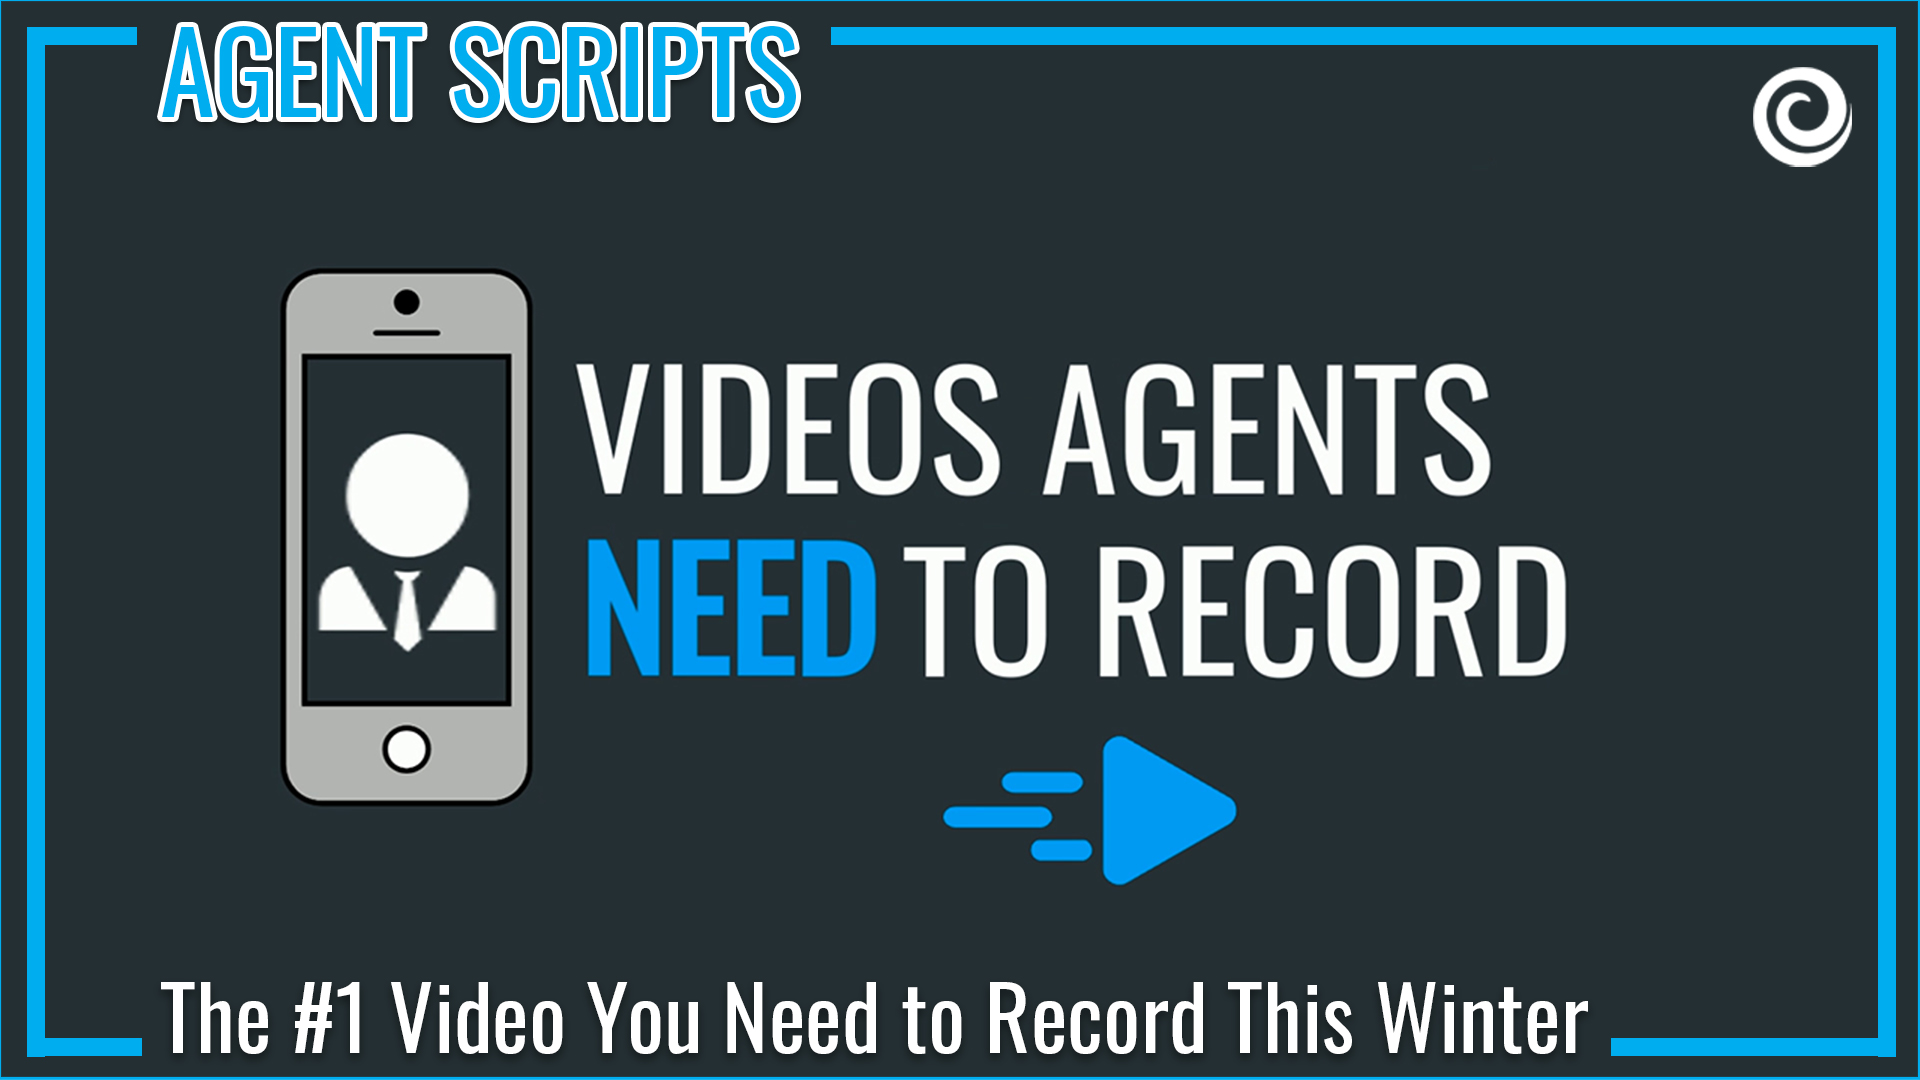 Important real estate agent scripts